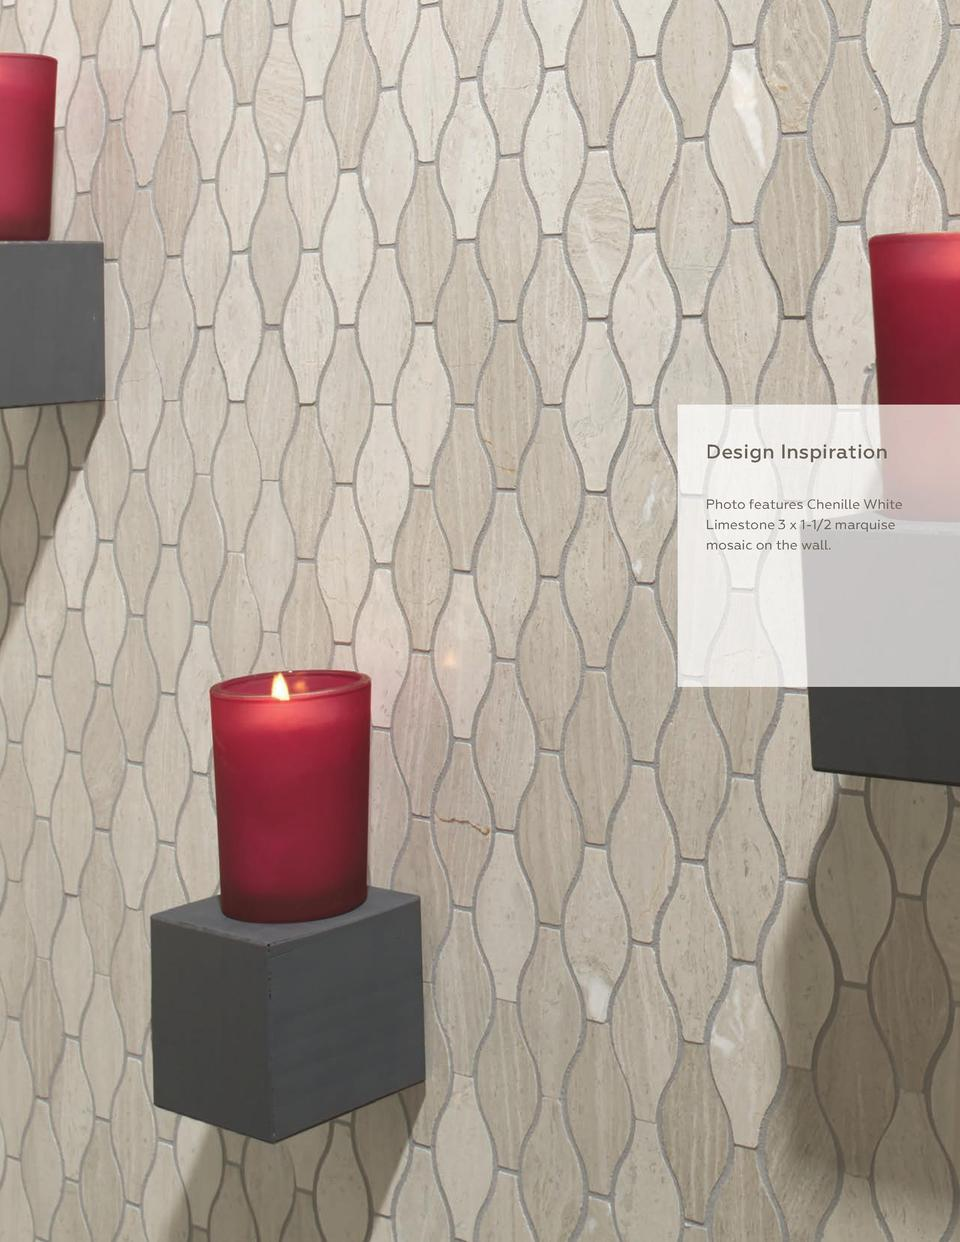 407  Design Inspiration Photo features Chenille White Limestone 3 x 1-1 2 marquise mosaic on the wall.  S P R I N G 2 01 5...